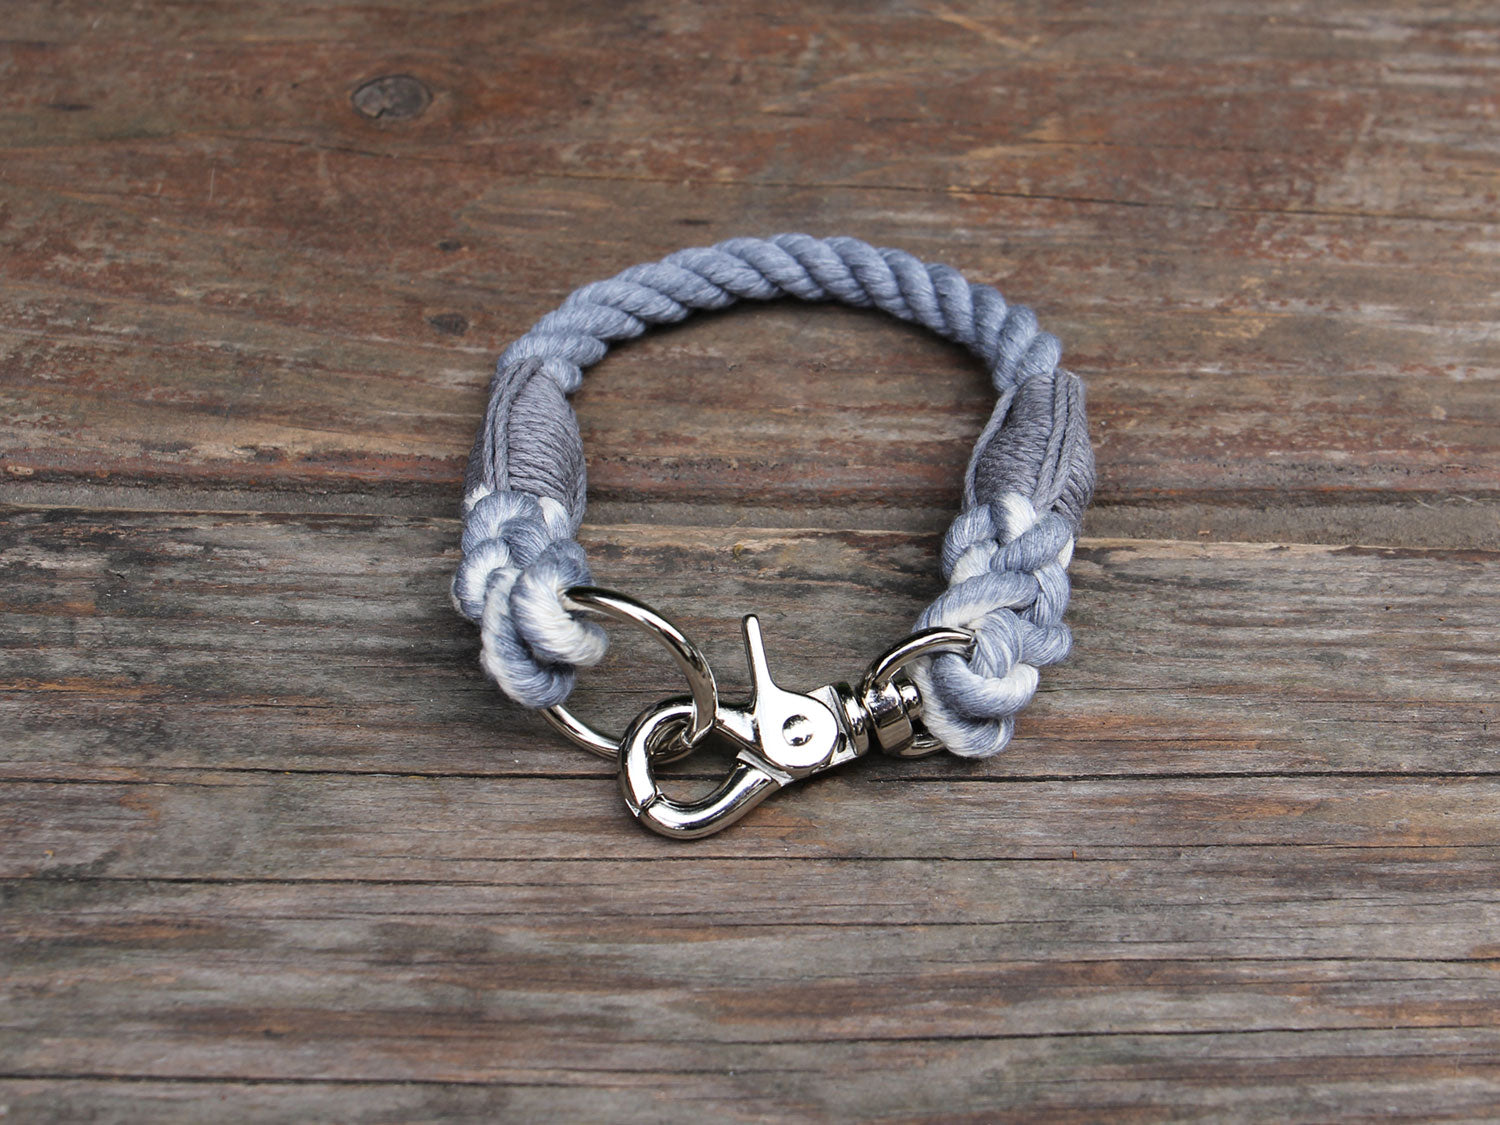 Seaside Blue Natural Cotton Rope Dog ID Collar - Extra Small and Toy Dogs